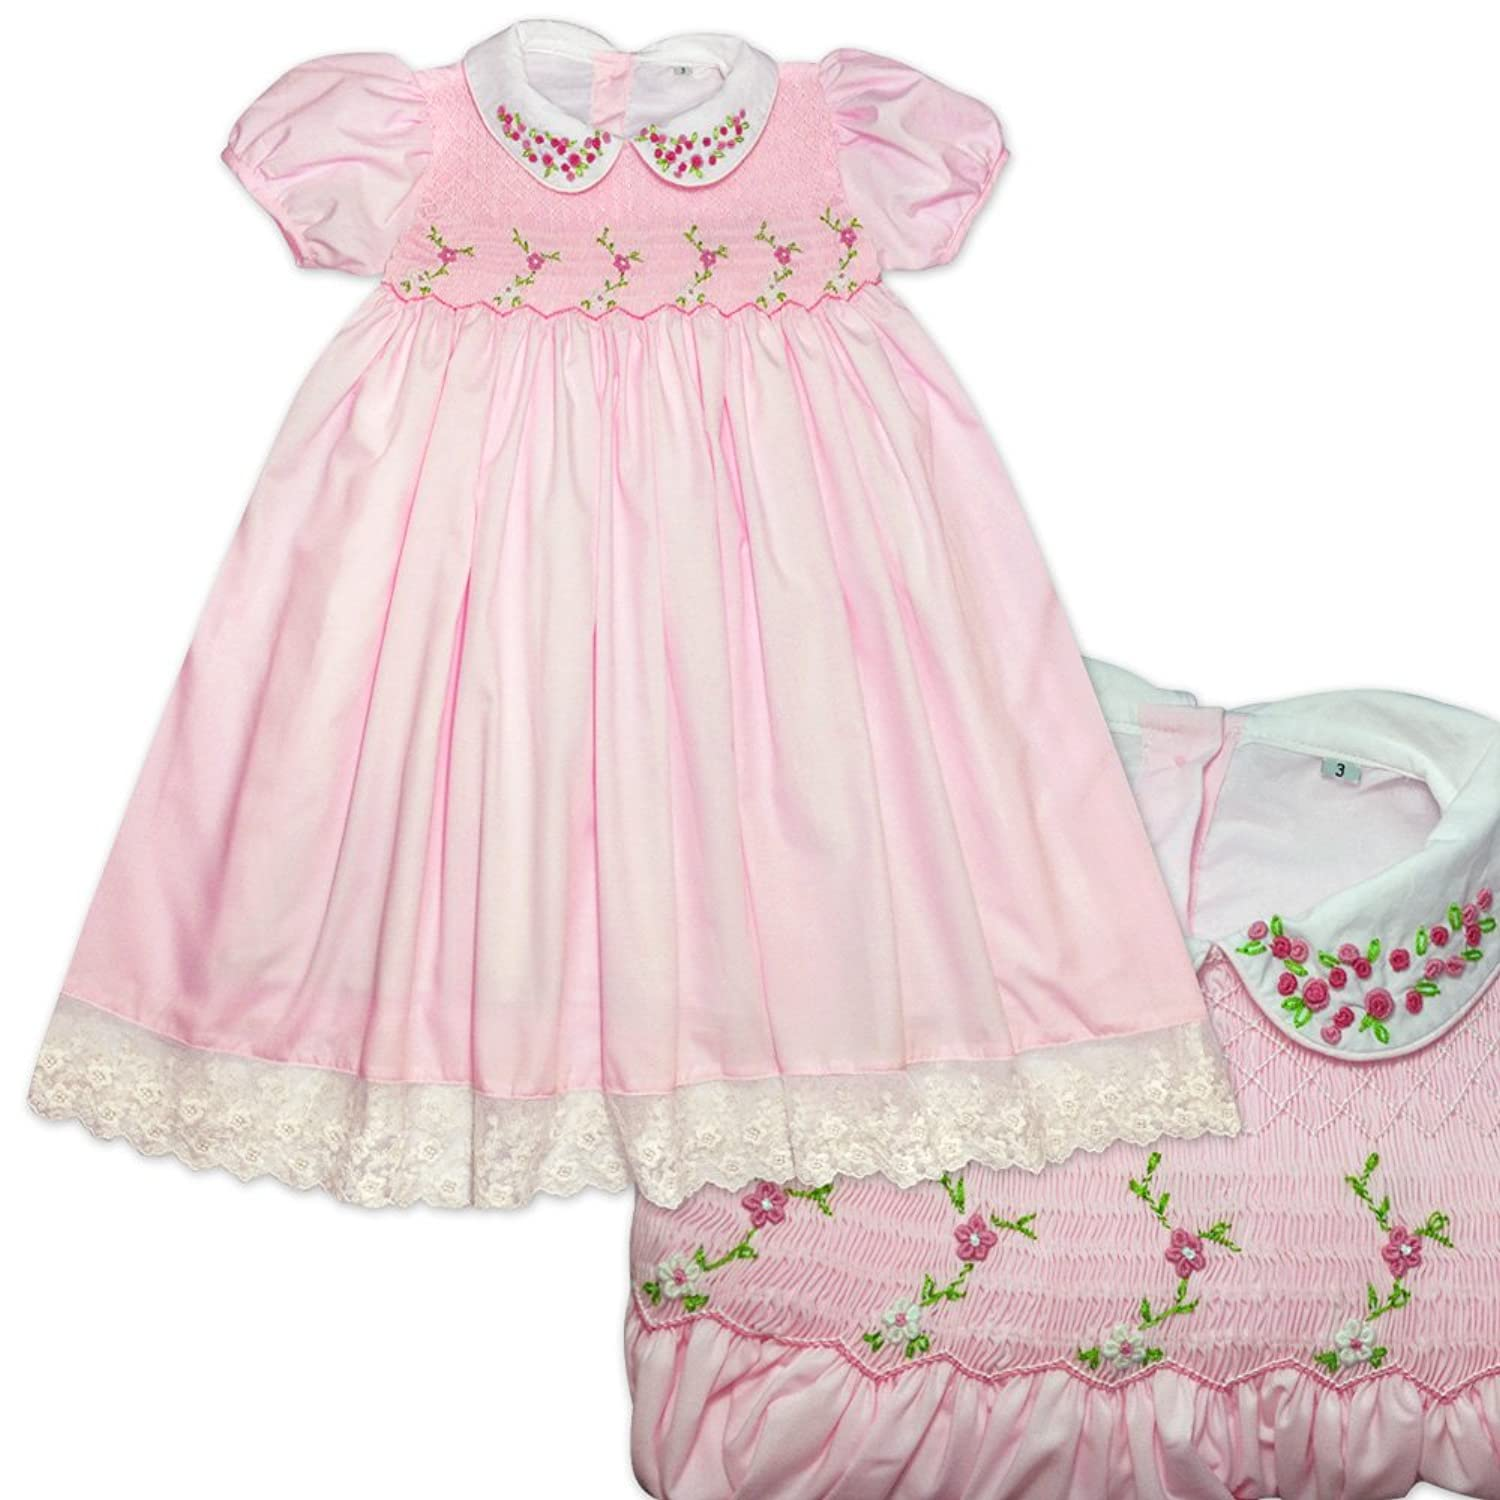 Baby Girls Traditional Hand Smocked Hand Embroidered 12 18 Months